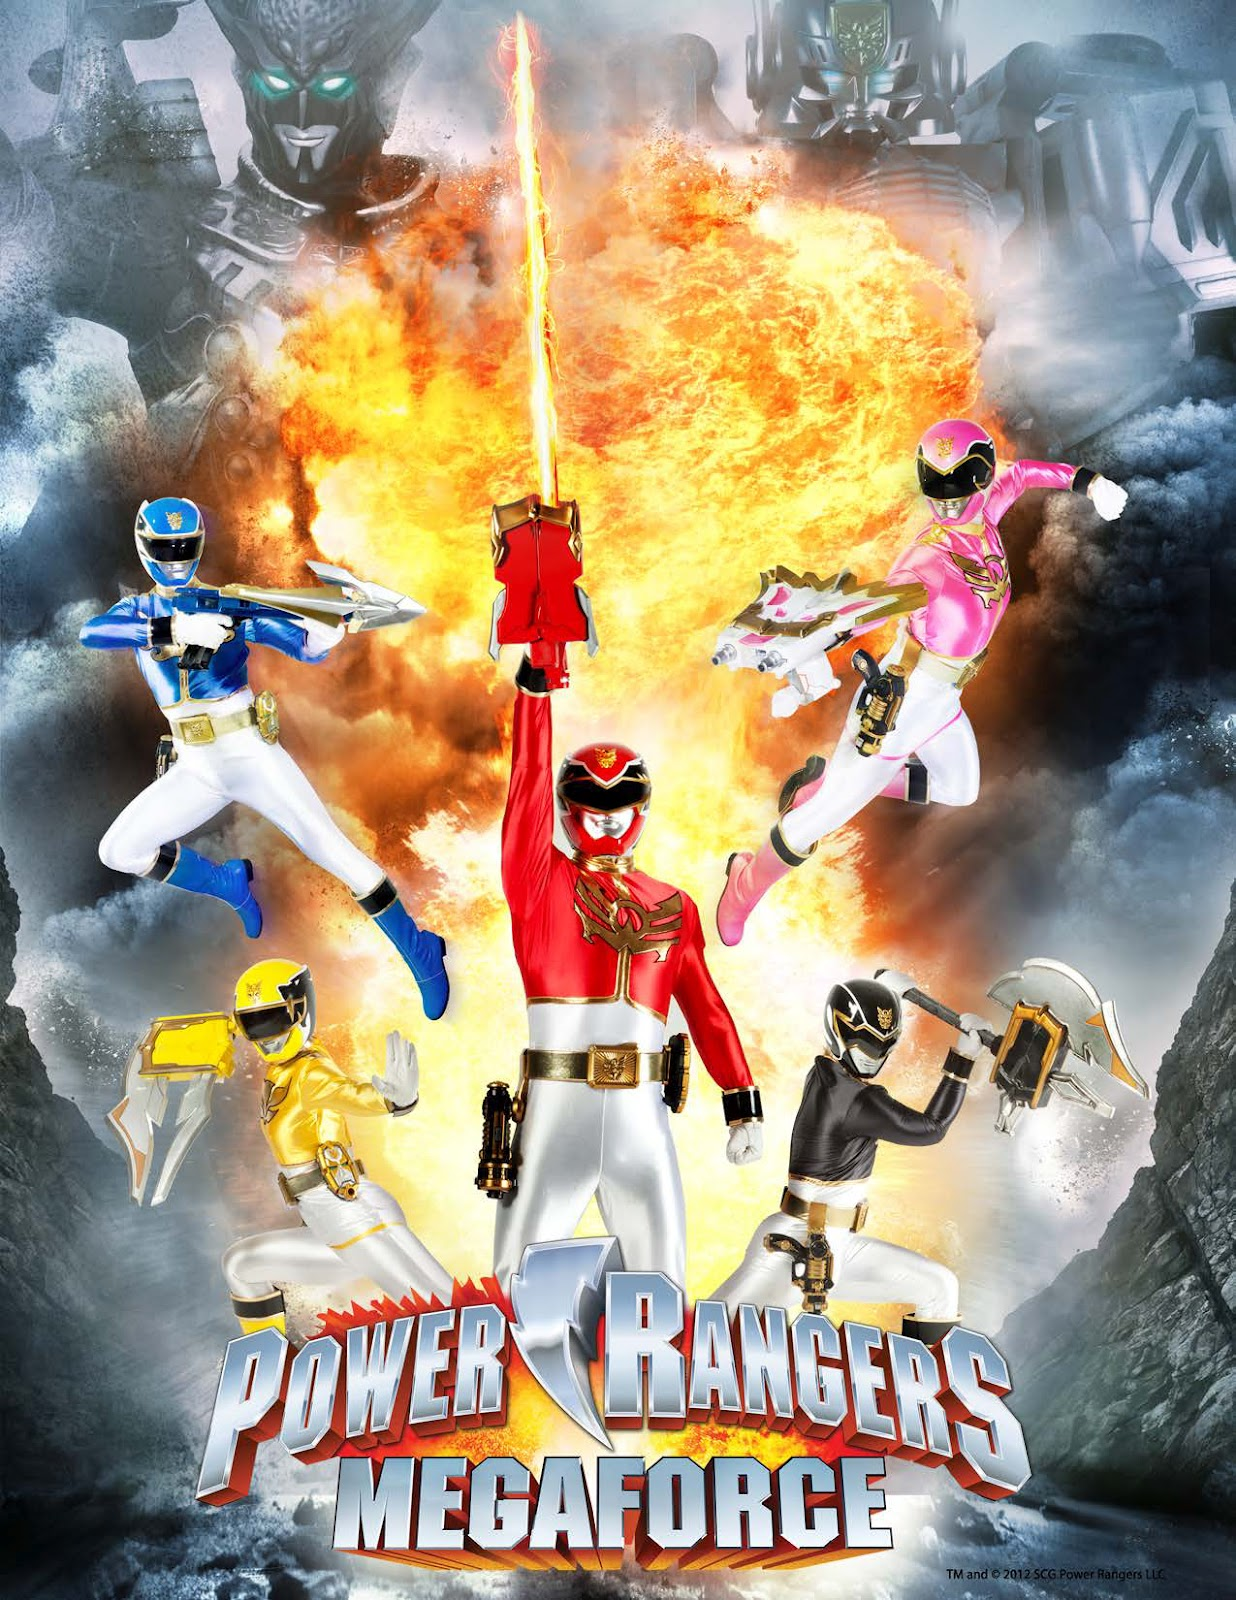 Power Rangers Megaforce 3DS Game Coming This Fall 2013